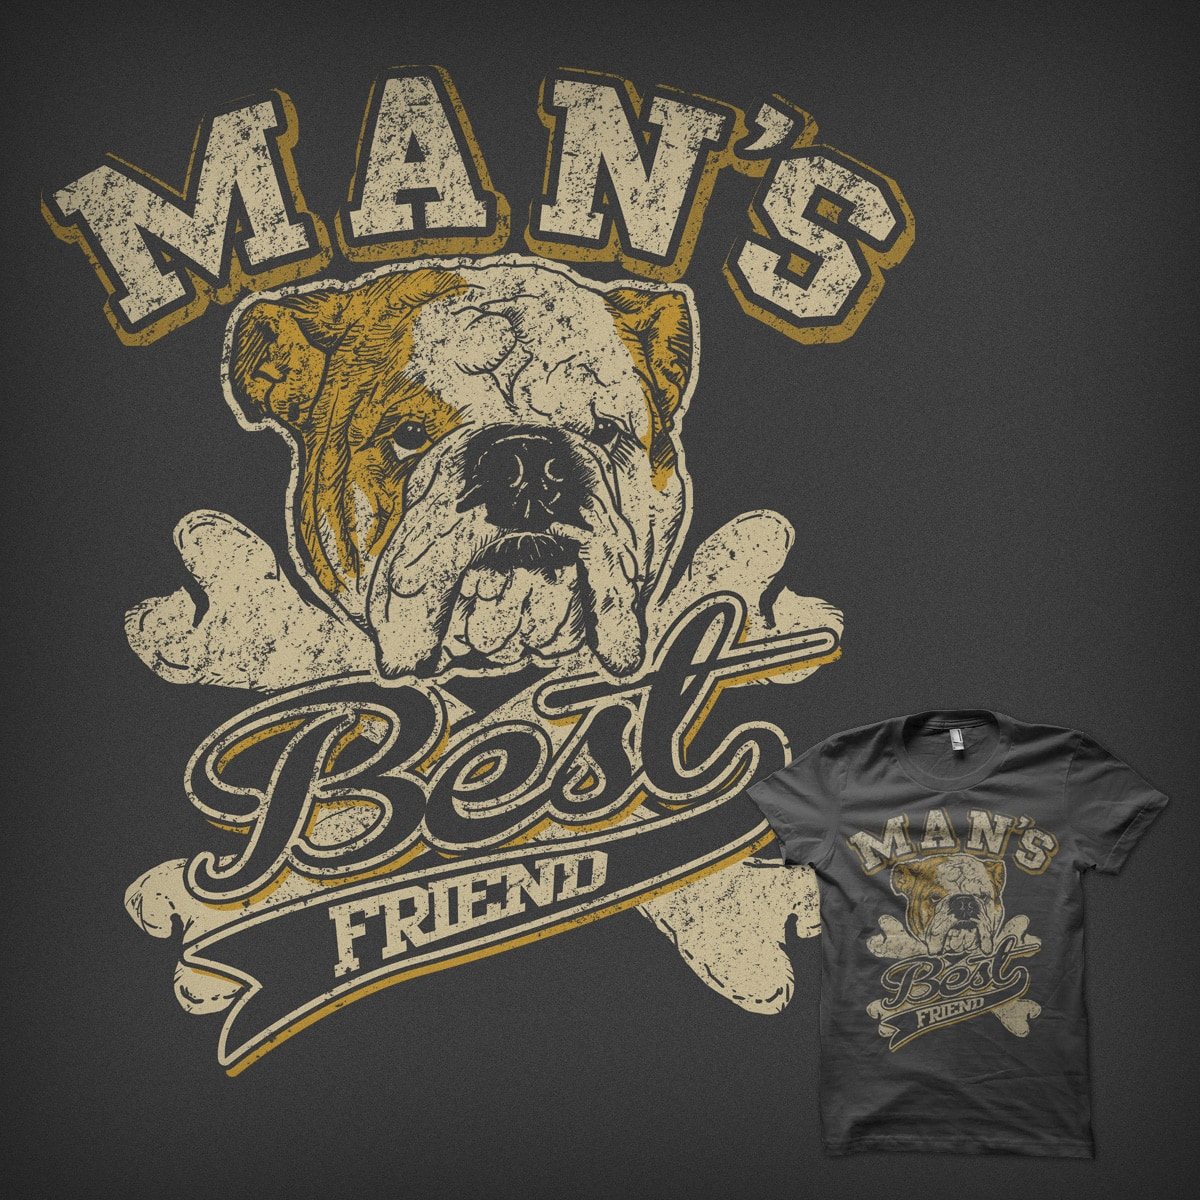 Man's Best Friend by Boy_Tinta on Threadless